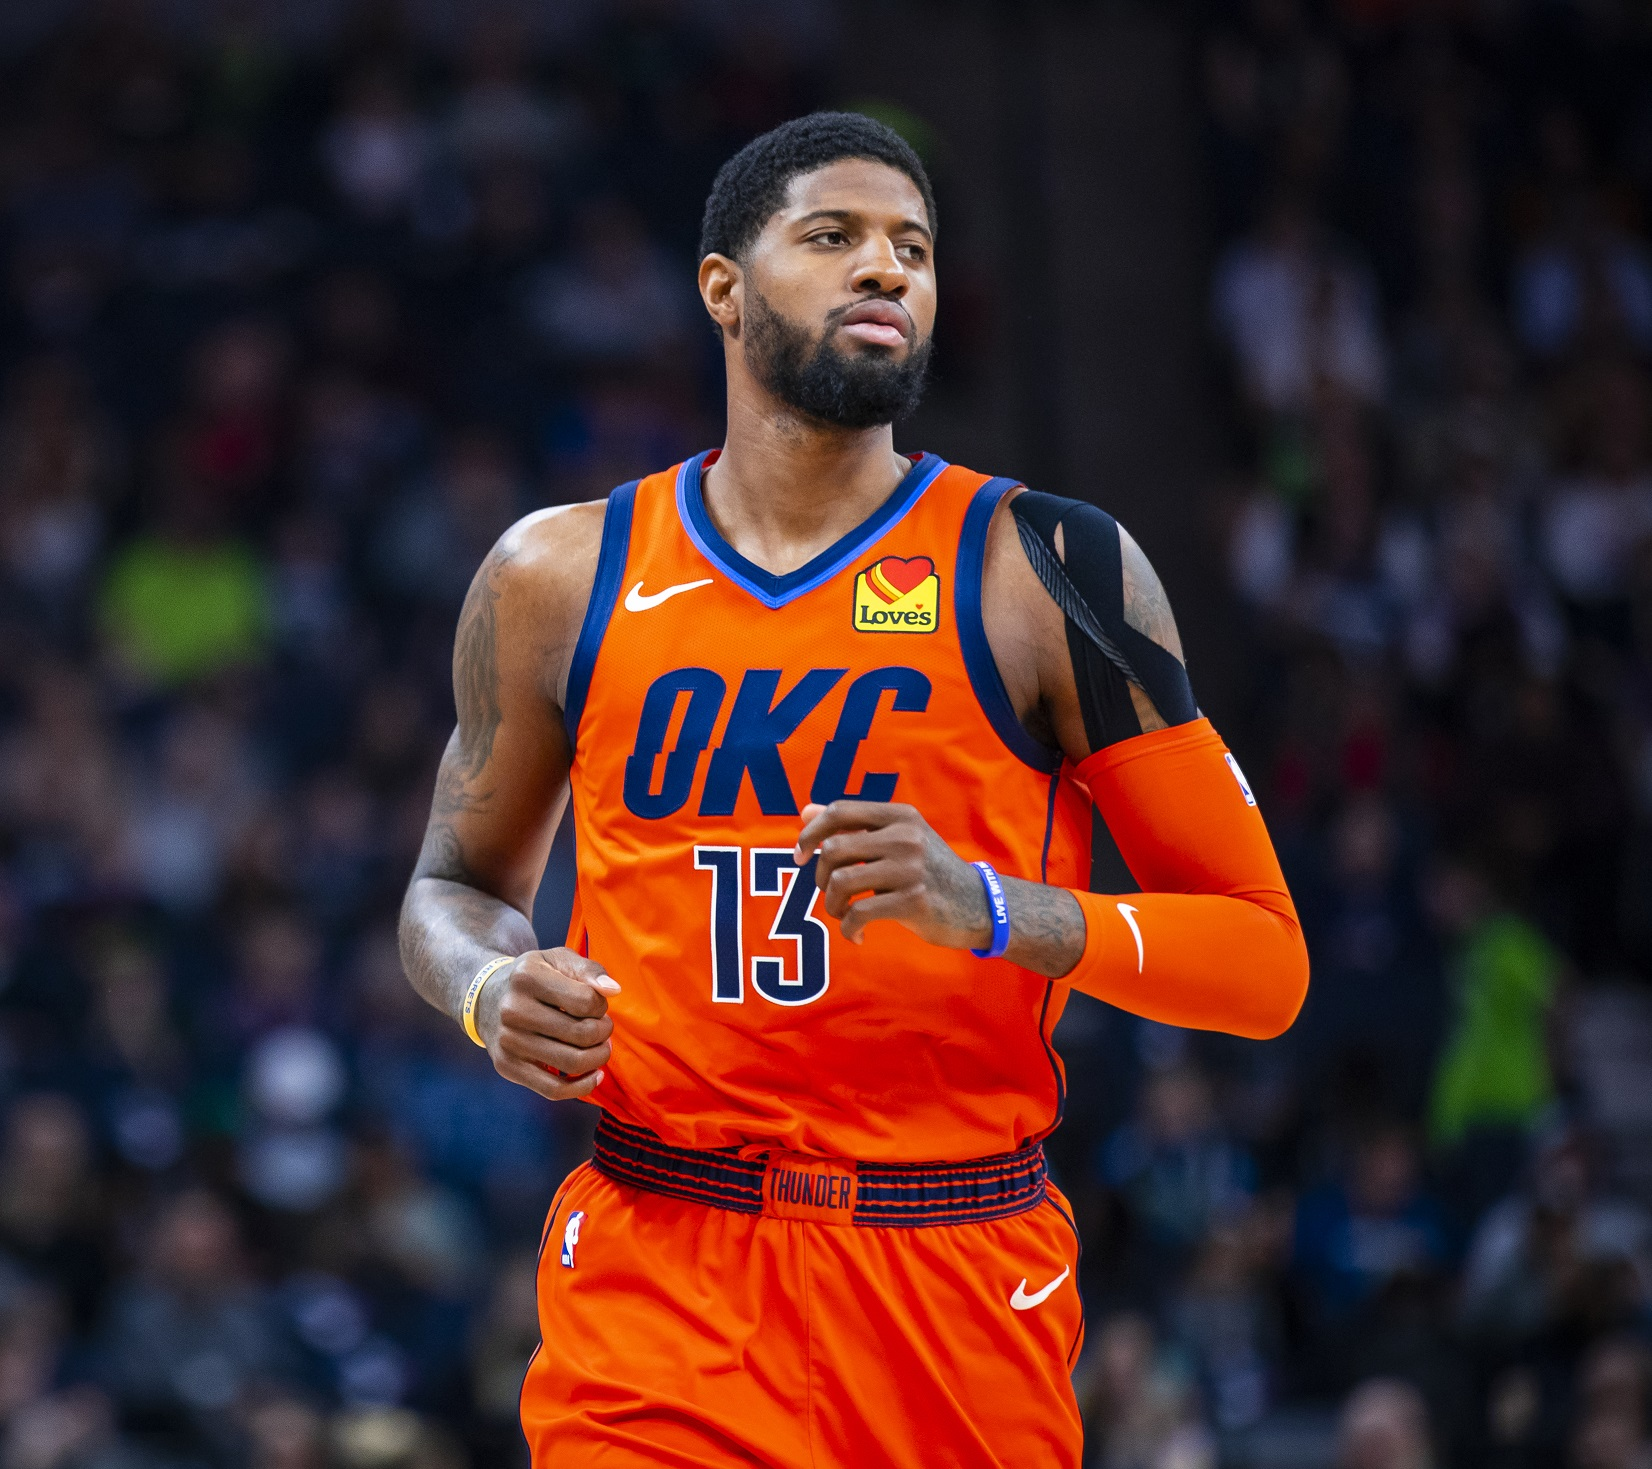 MINNEAPOLIS, MN - APRIL 7: Paul George #13 of the Oklahoma City Thunder looks on during the game against the Minnesota Timberwolves on April 7, 2019 at Target Center in Minneapolis, Minnesota.  Copyright 2019 NBAE (Photo by Zach Beeker/NBAE via Getty Images)